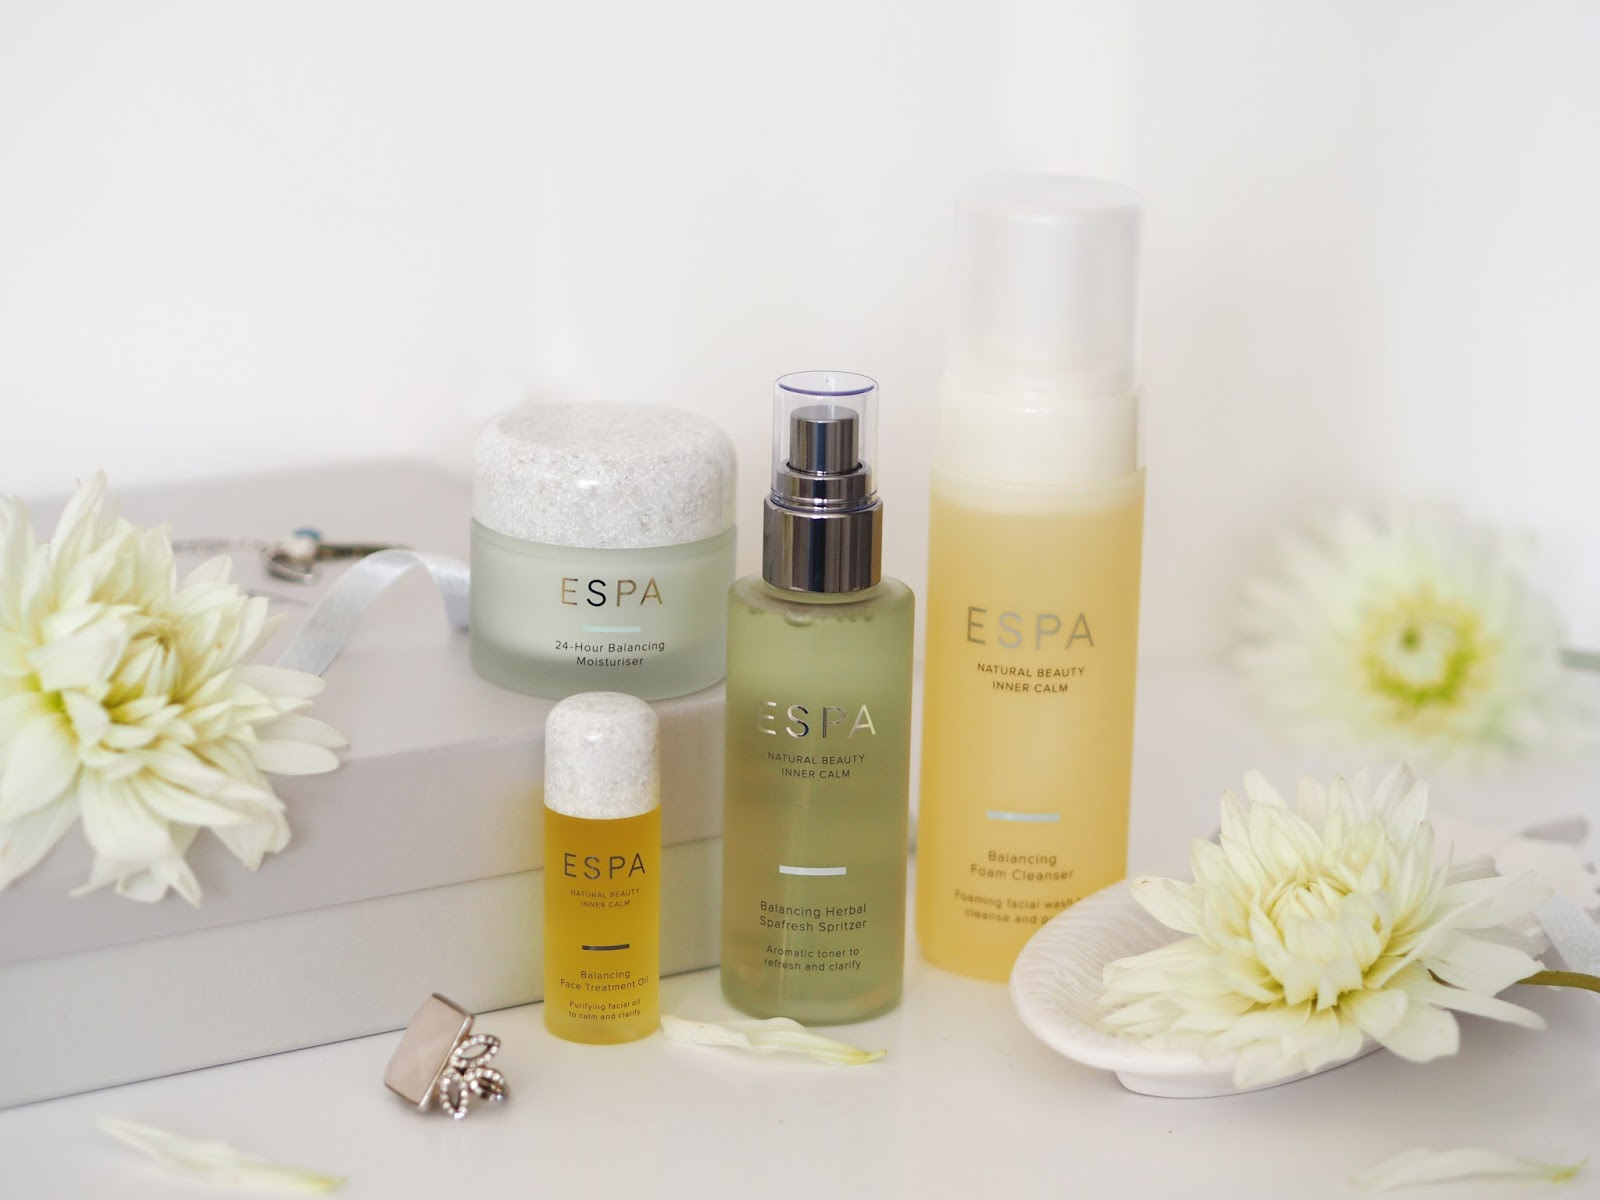 Espa Skincare, Katie Kirk Loves, UK Blogger, Beauty Blogger, Spa Products, Skincare Blogger, Beauty Review, Skincare Review, Natural Skincare